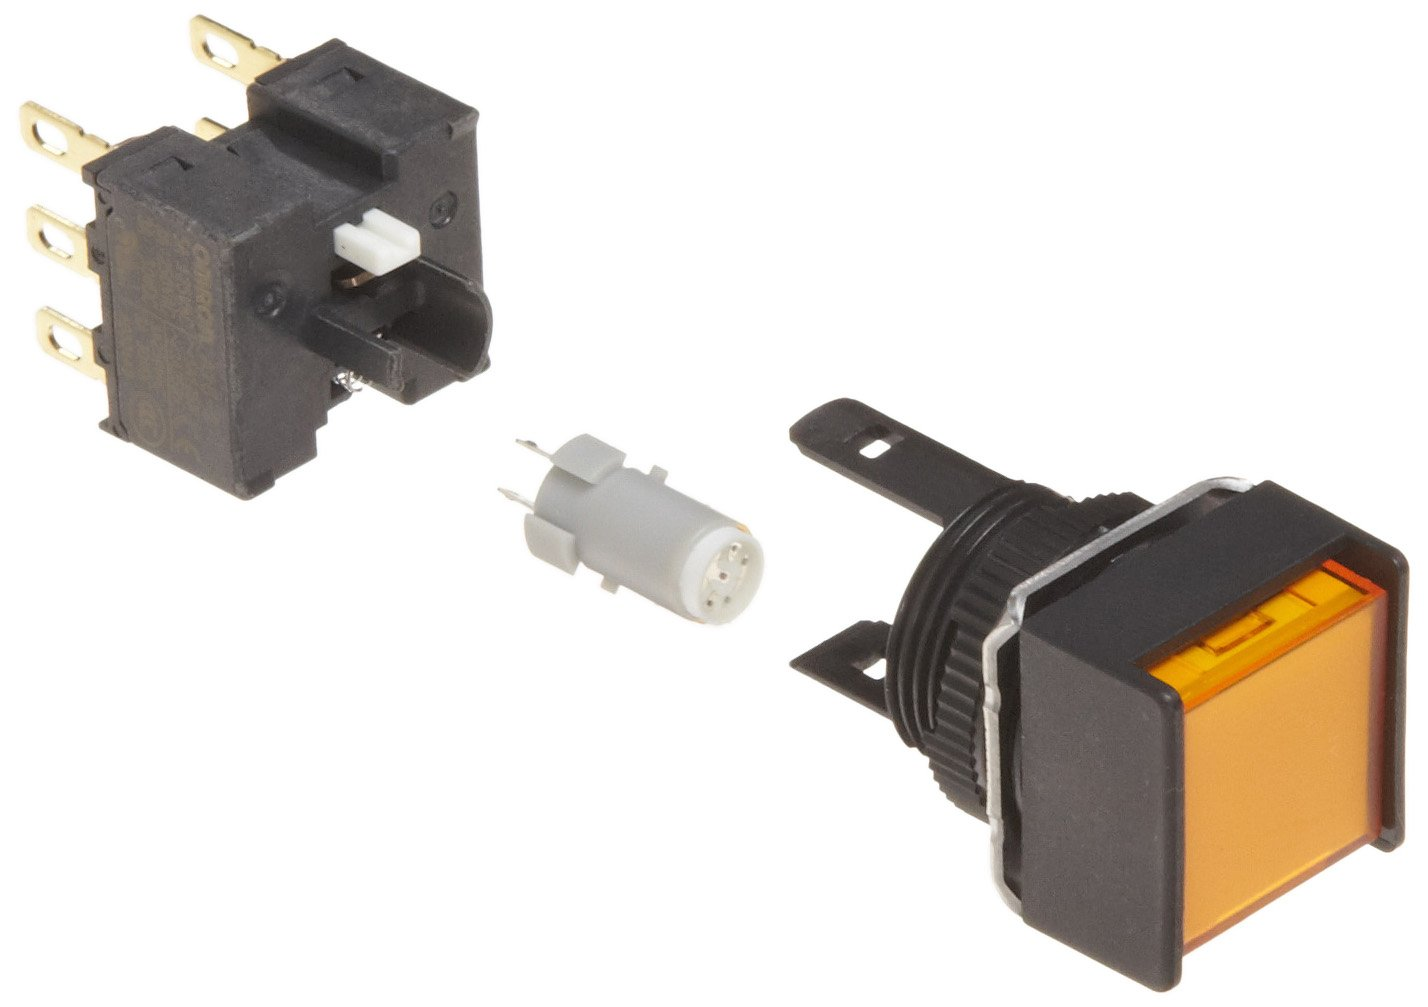 Omron A165L-AYM-24D-2 Two Way Guard Type Pushbutton and Switch, Solder Terminal, IP65 Oil-Resistant, 16mm Mounting Aperture, LED Lighted, Momentary Operation, Square, Yellow, 24 VDC Rated Voltage, Double Pole Double Throw Contacts